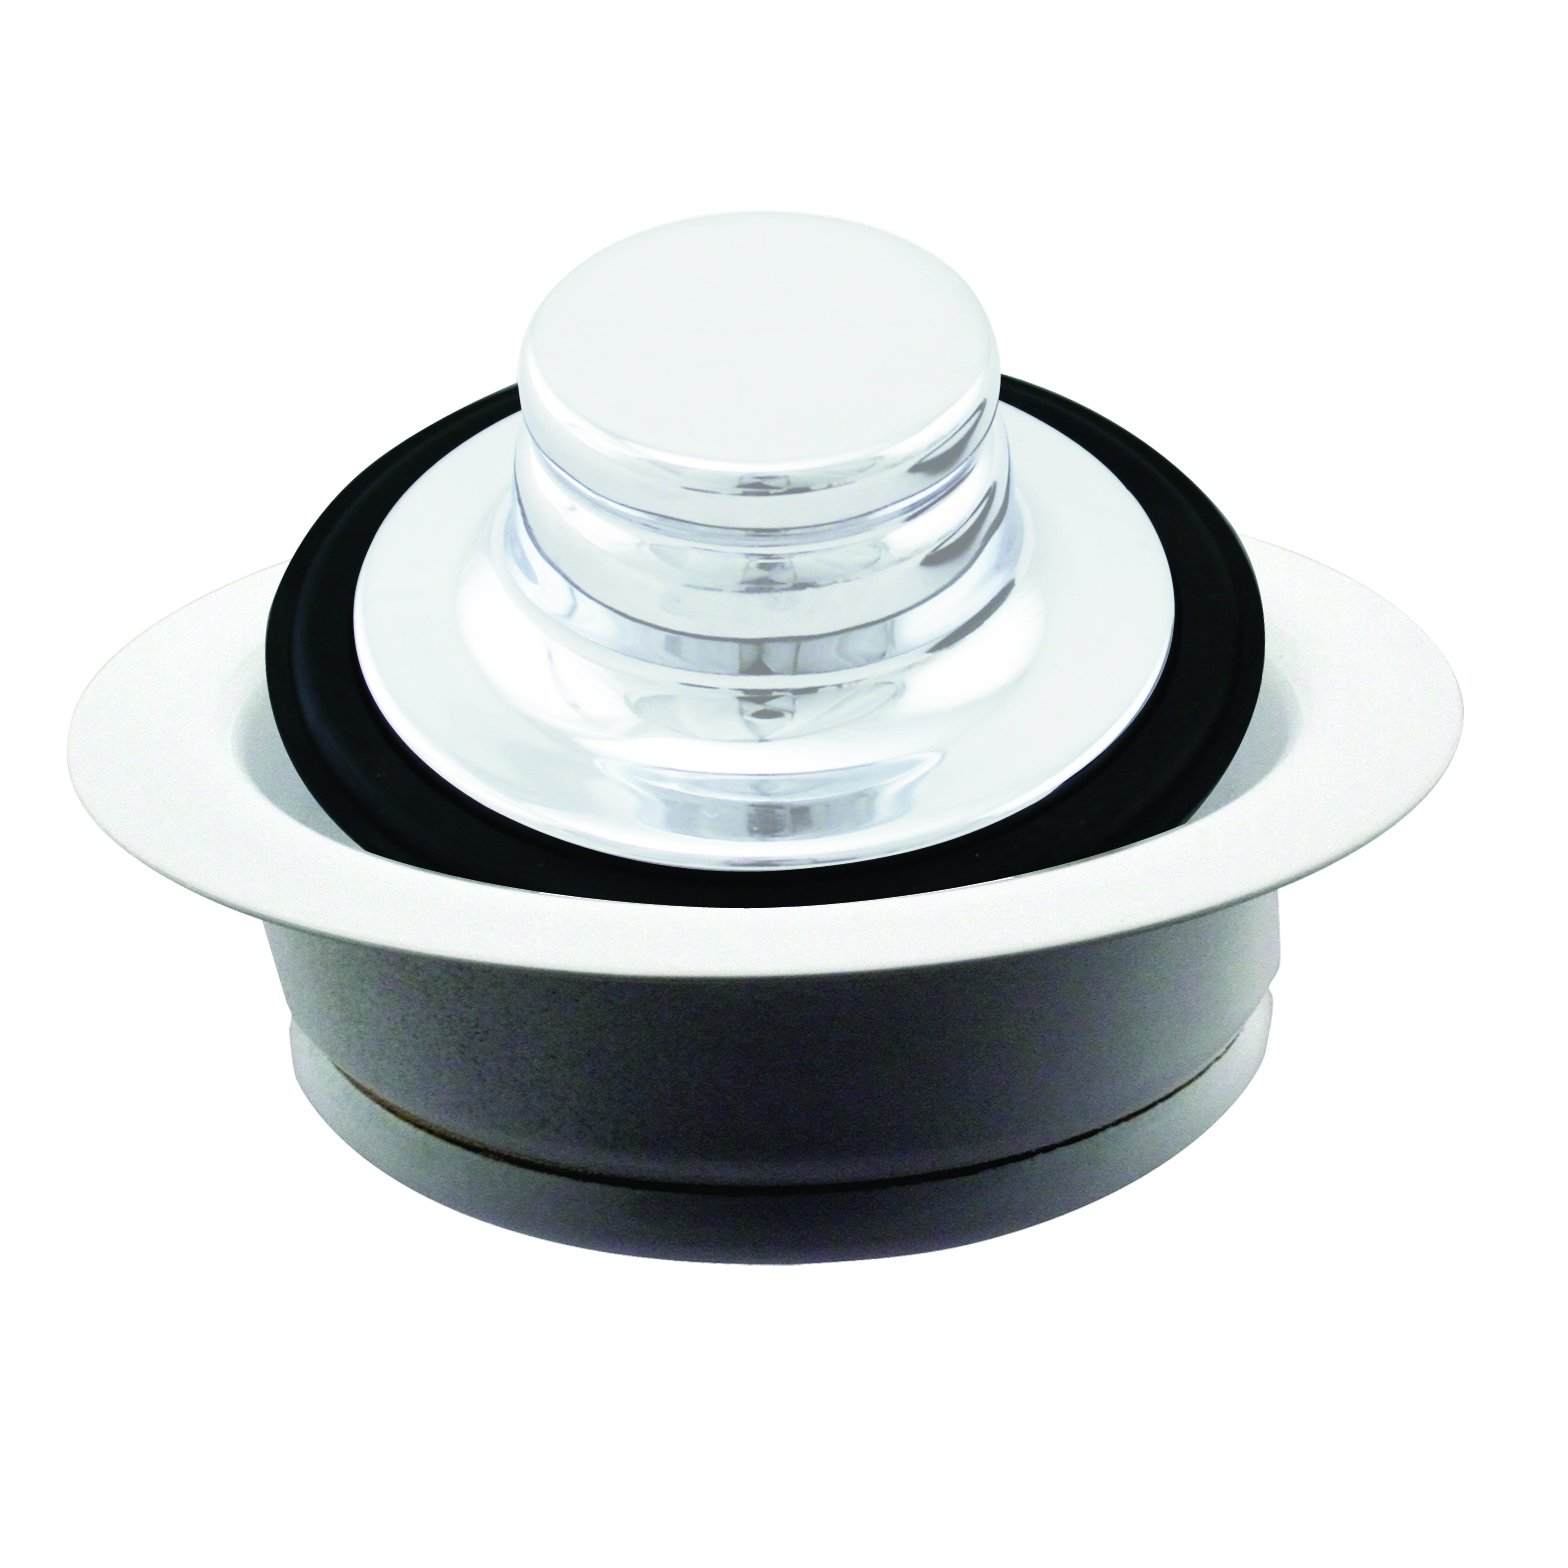 Westbrass InSinkErator Style Disposal Flange and Stopper, Powder Coat White, D2089-50 by Westbrass